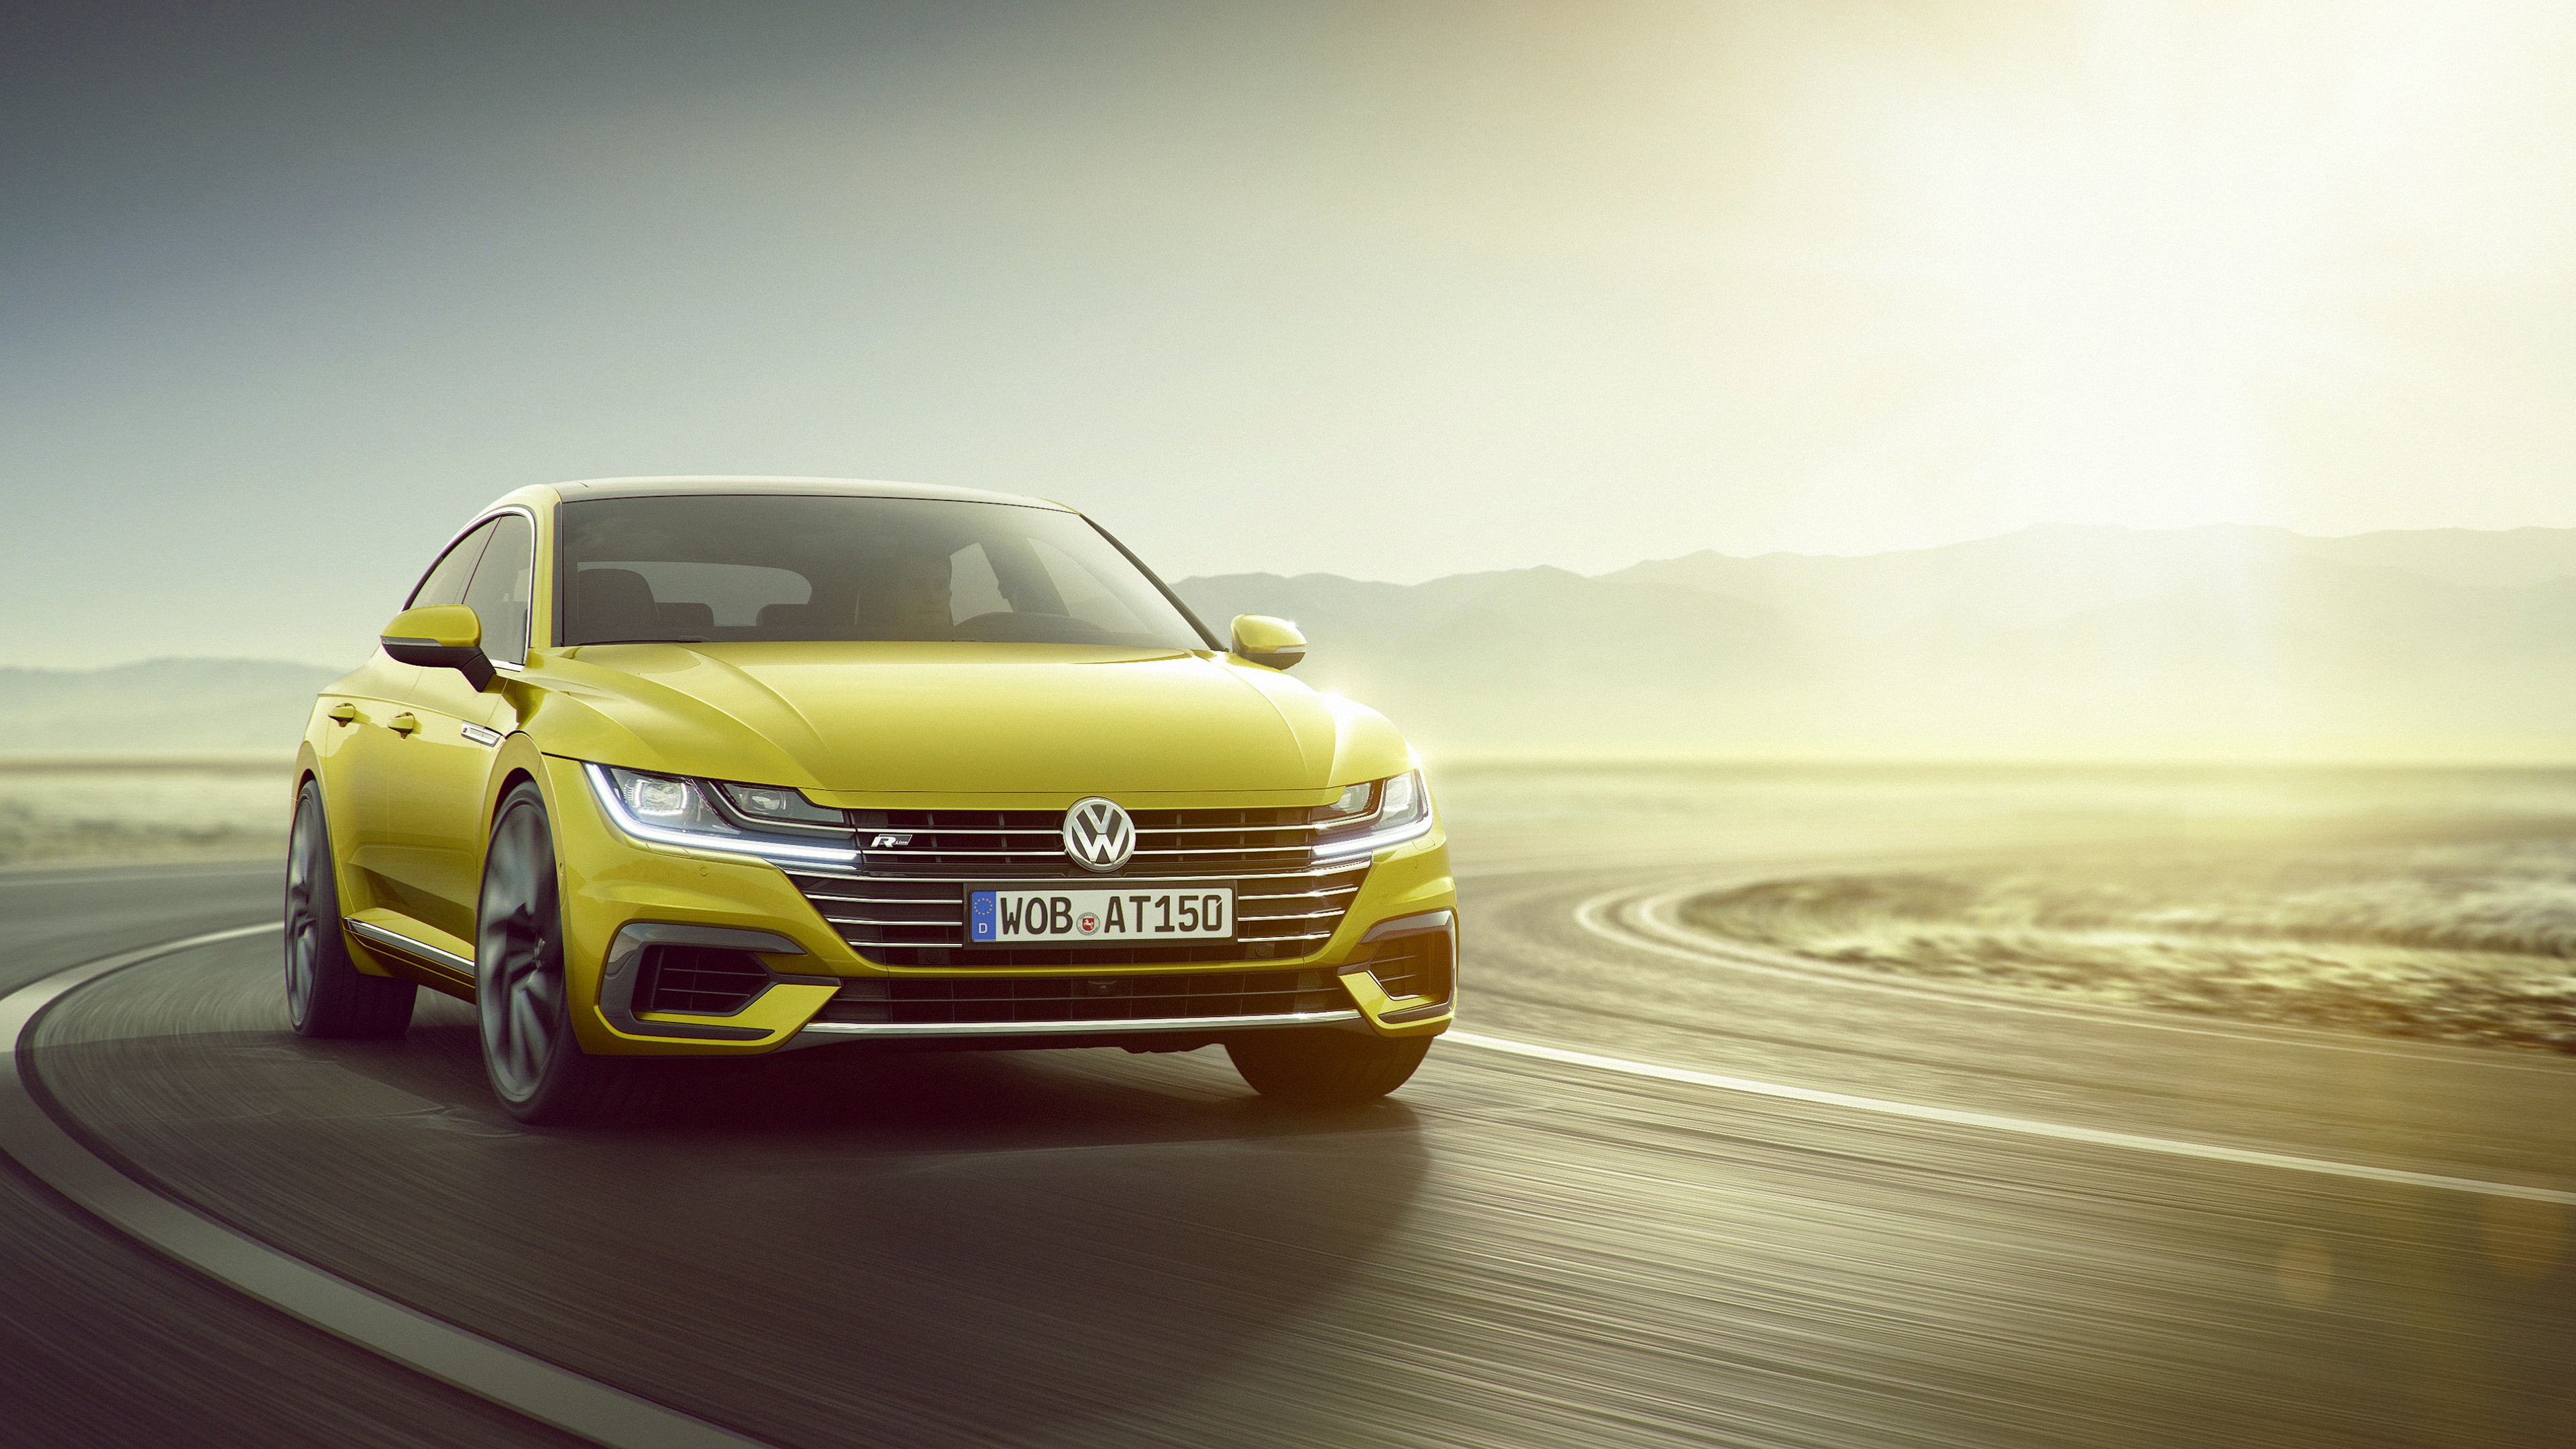 Wallpaper volkswagen arteon r line 2018 cars 4k cars for Wallpaper home line